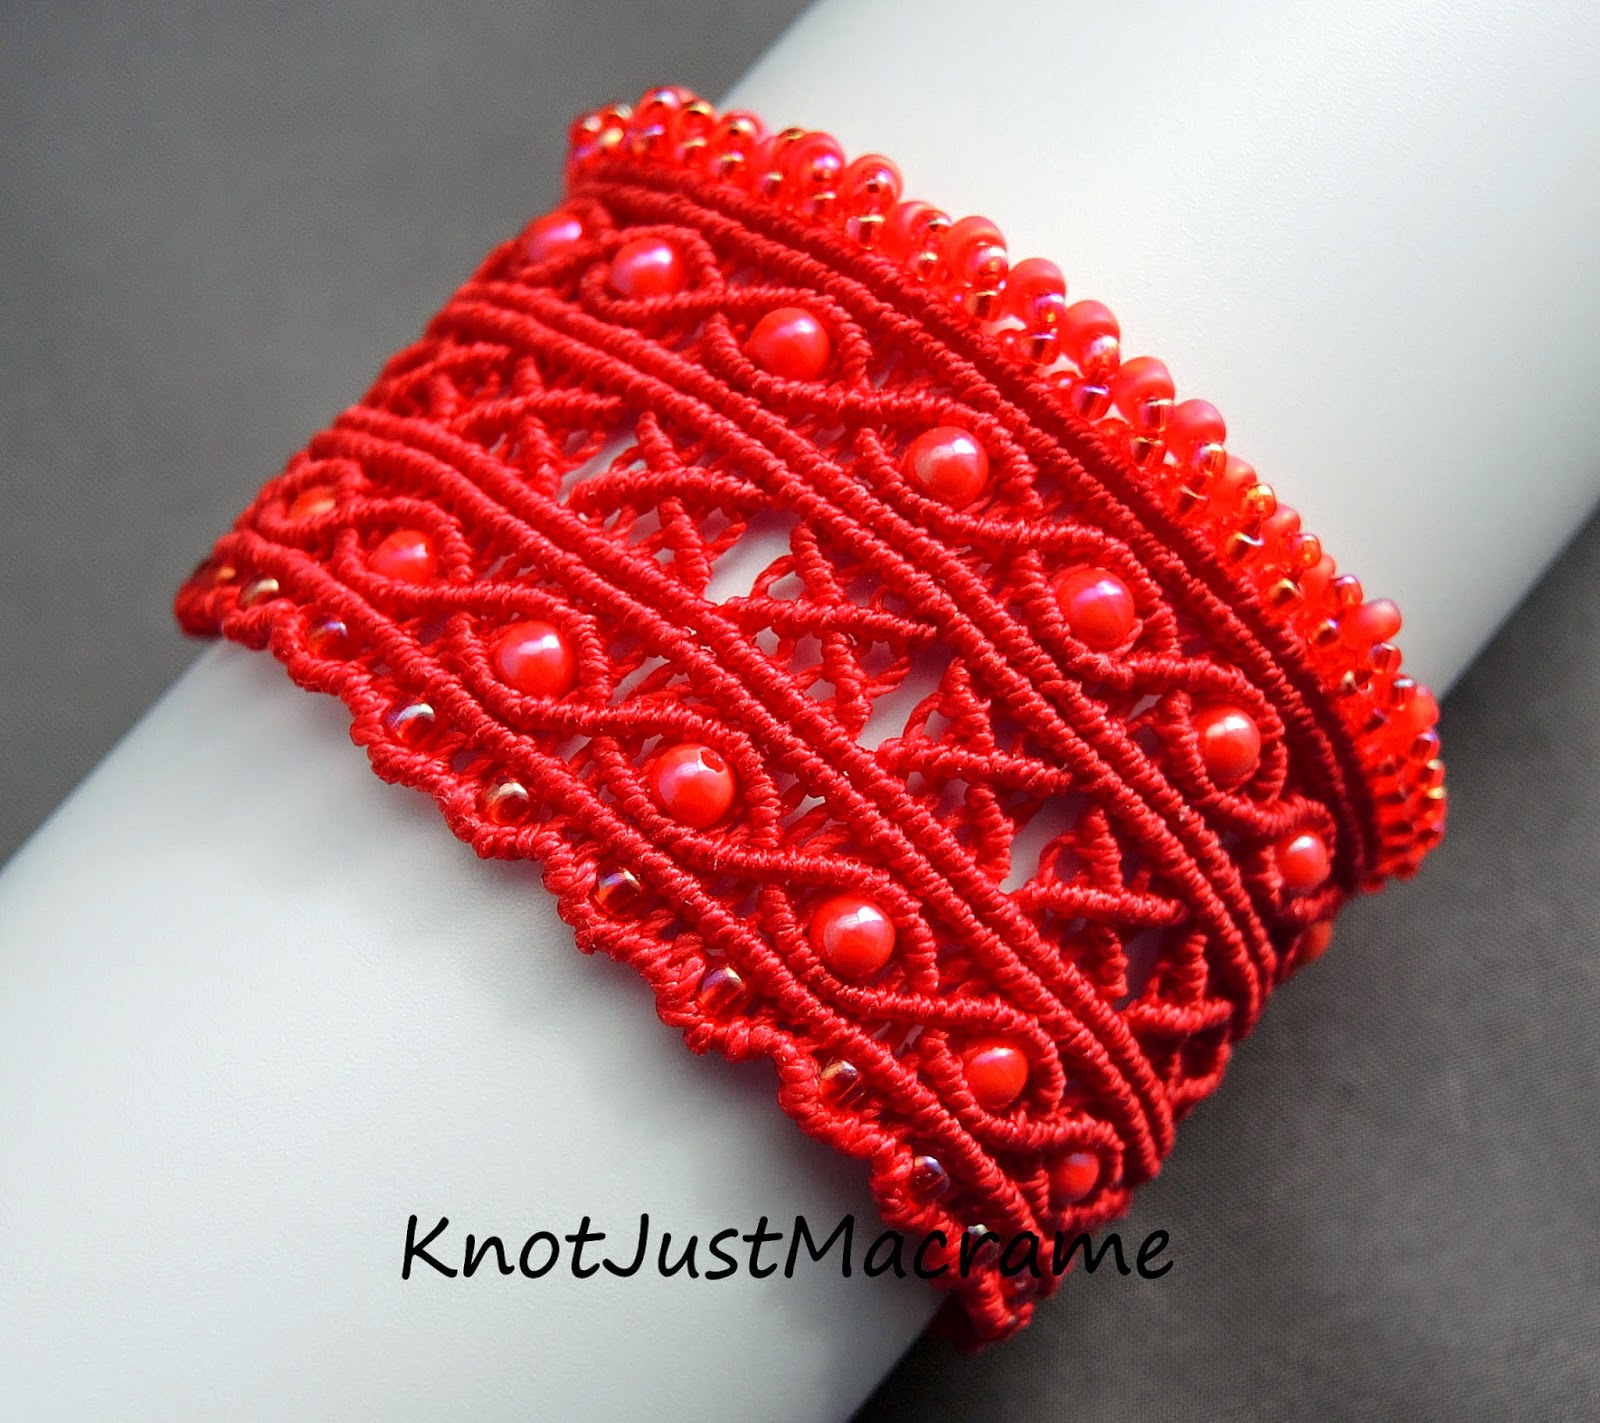 Argus micro macrame cuff in red by Sherri Stokey